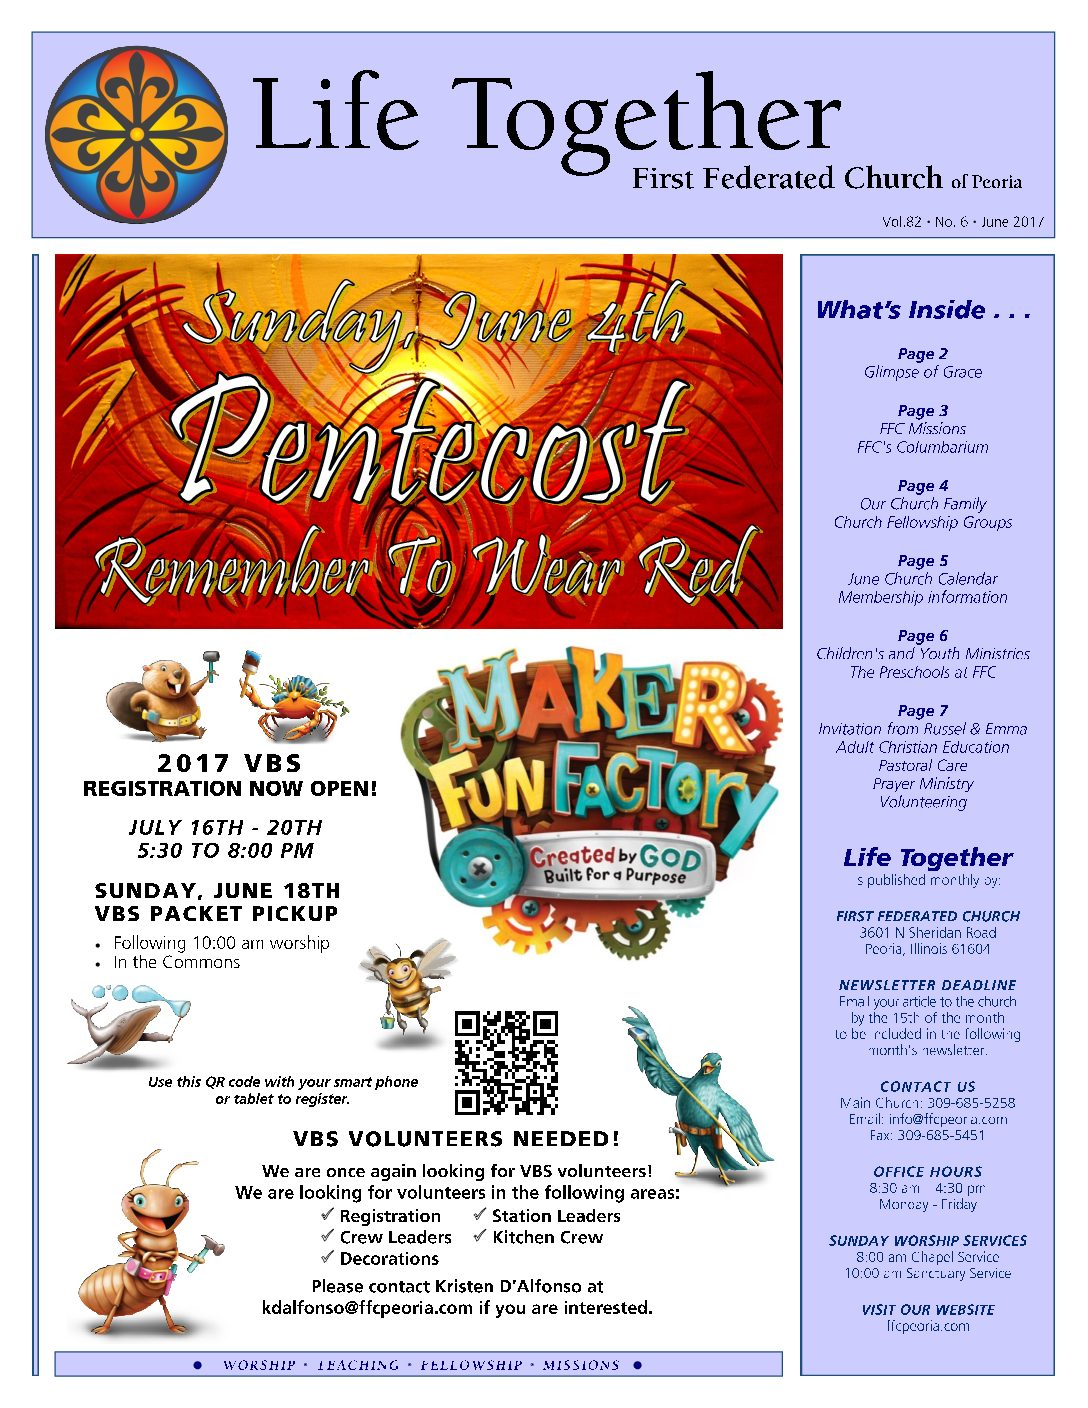 LT June 2017 FOR WEBSITE   First Federated Church of Peoria